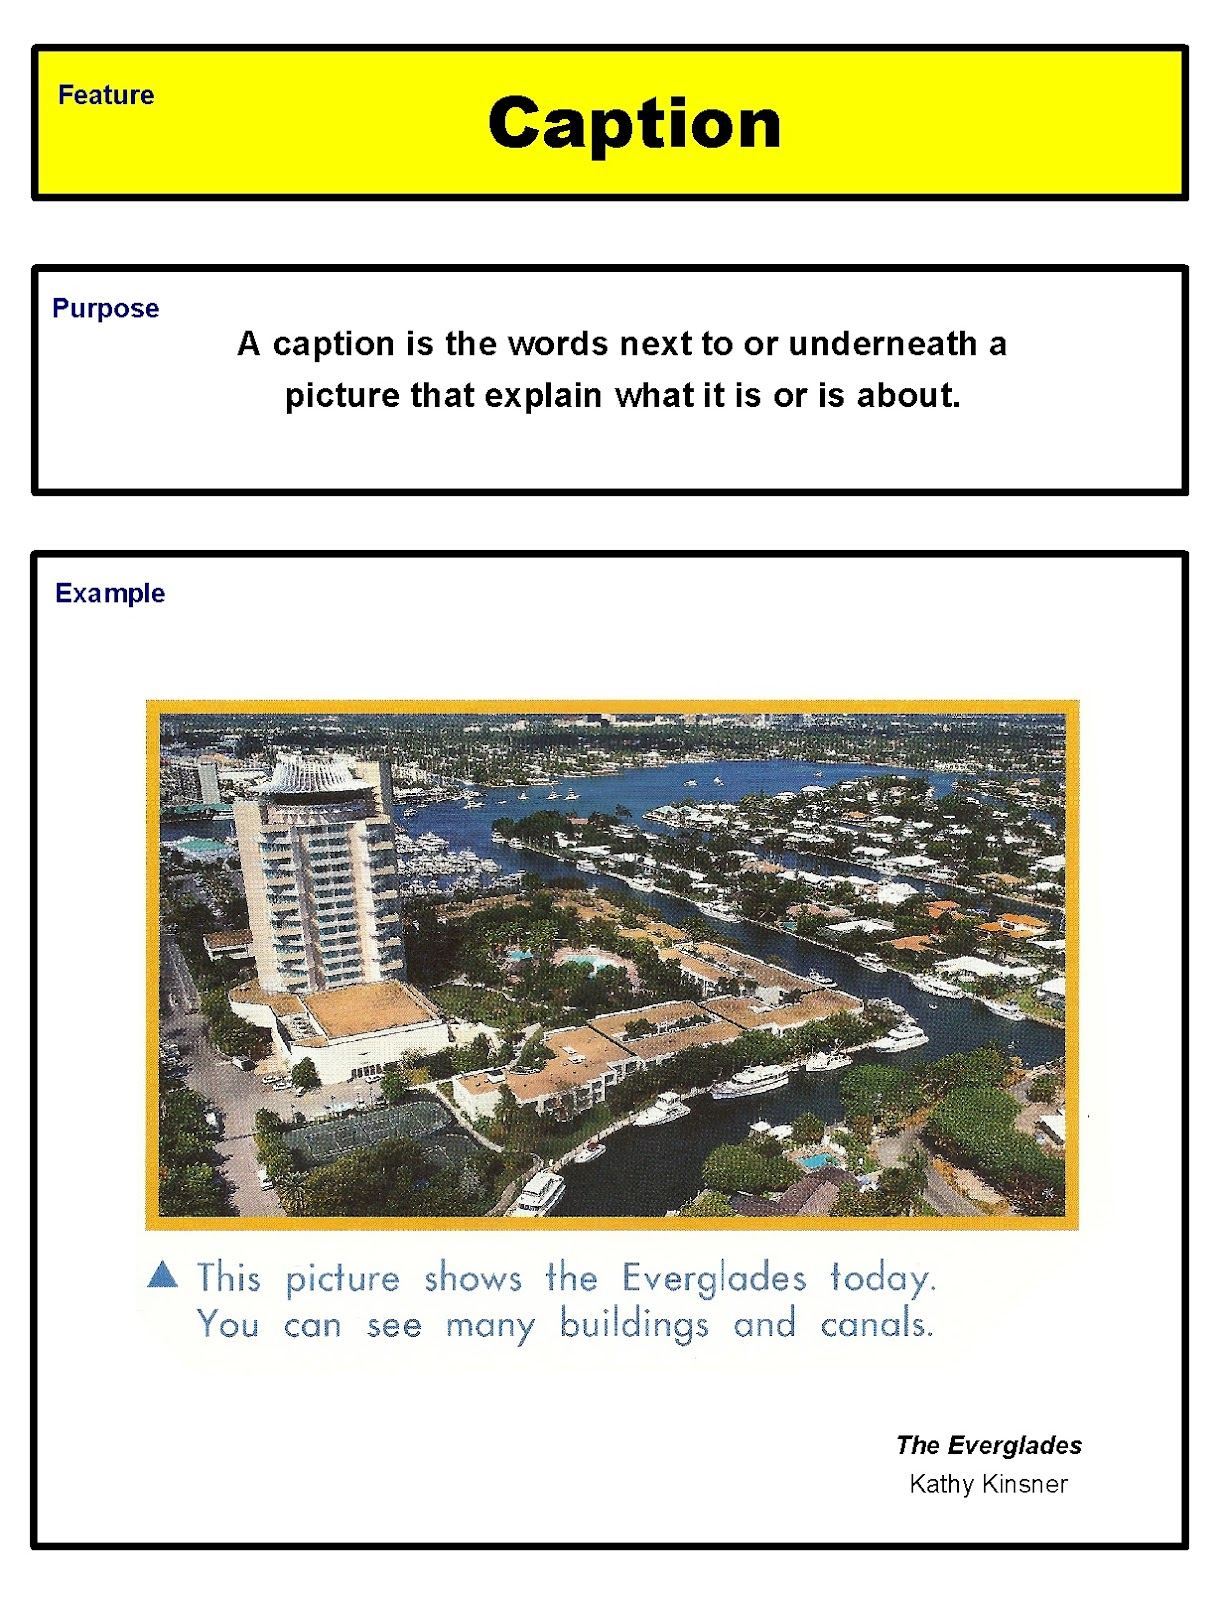 Non Fiction Articles For Students Images